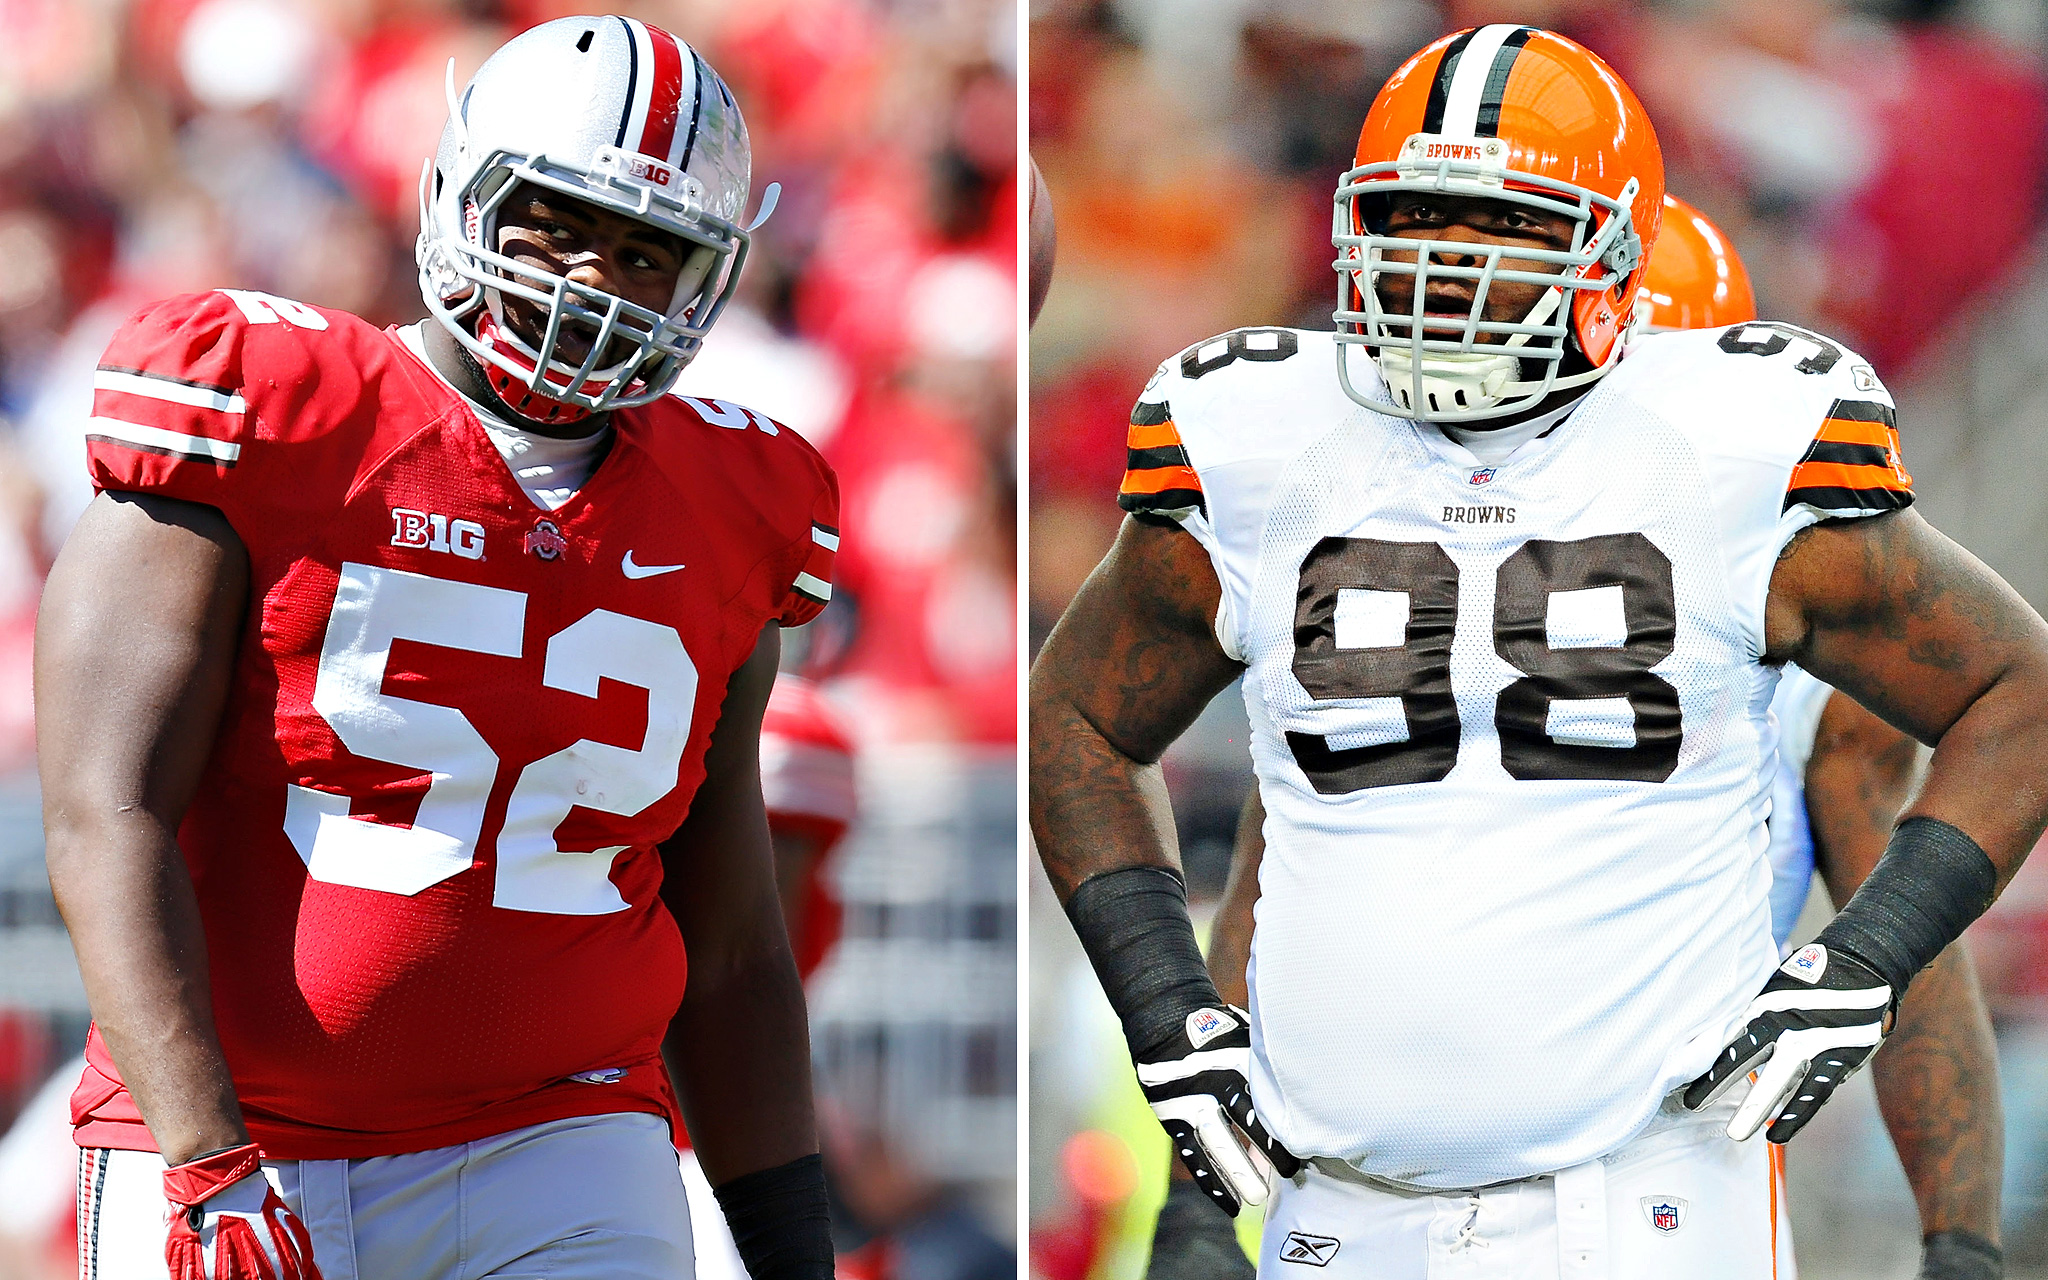 Johnathan Hankins, Ohio State/Phil Taylor, Cleveland